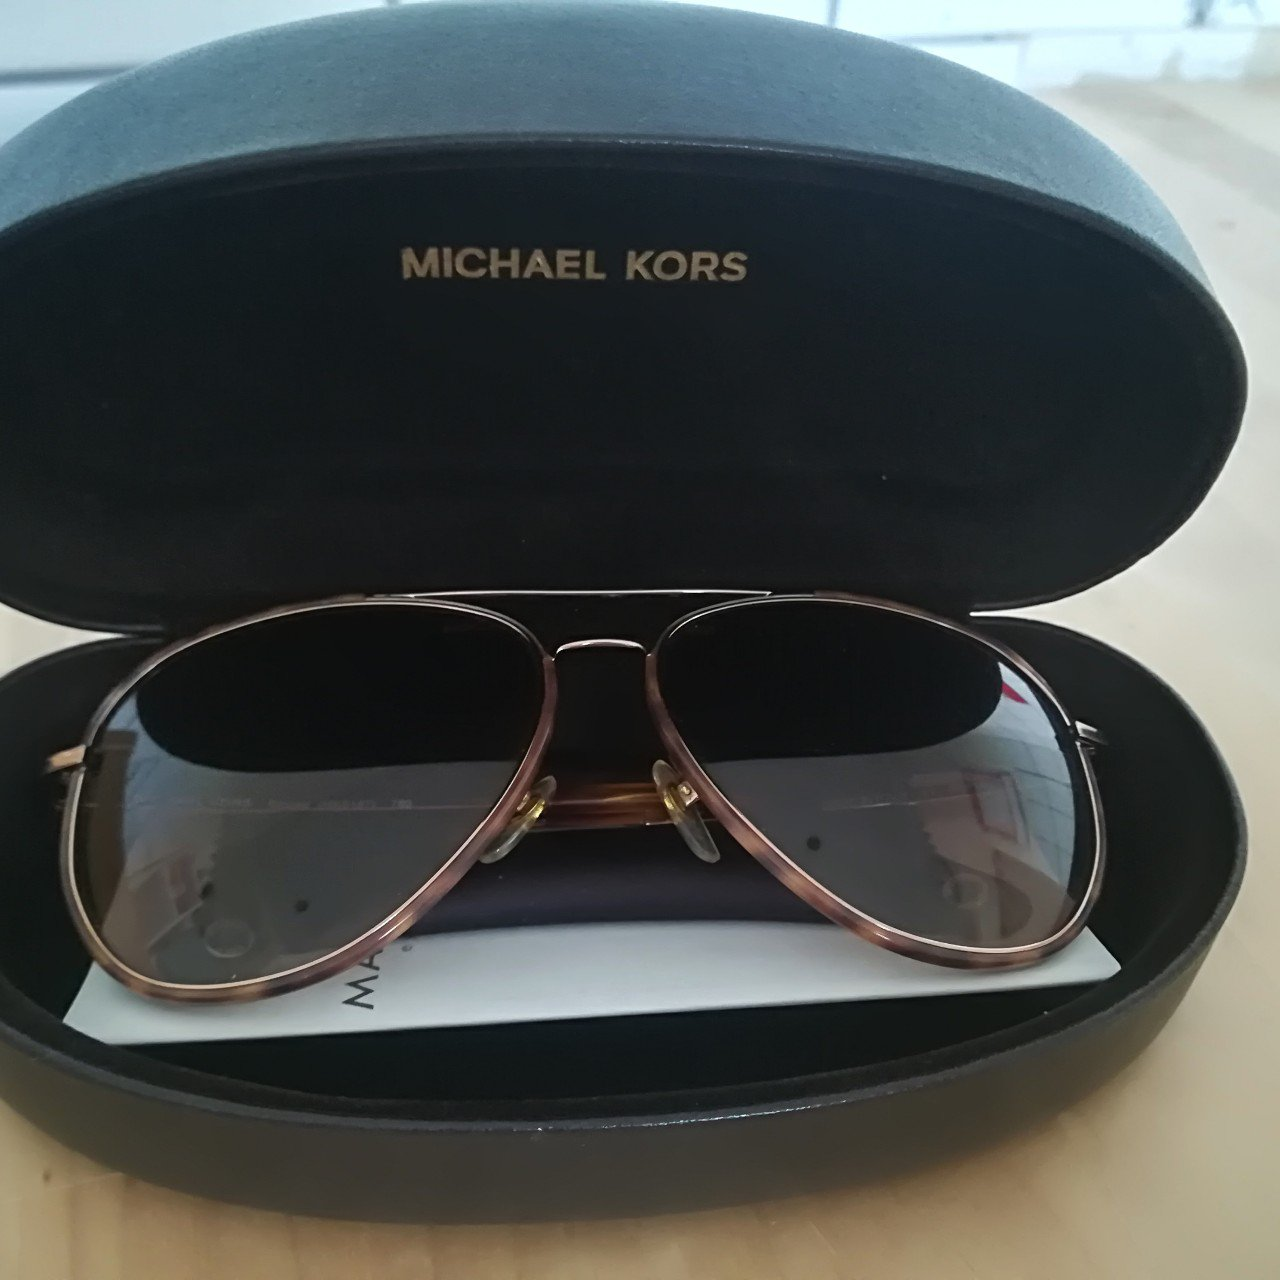 31072a75f4d0 Michael Kors aviator style sunglasses. In good condition. as - Depop